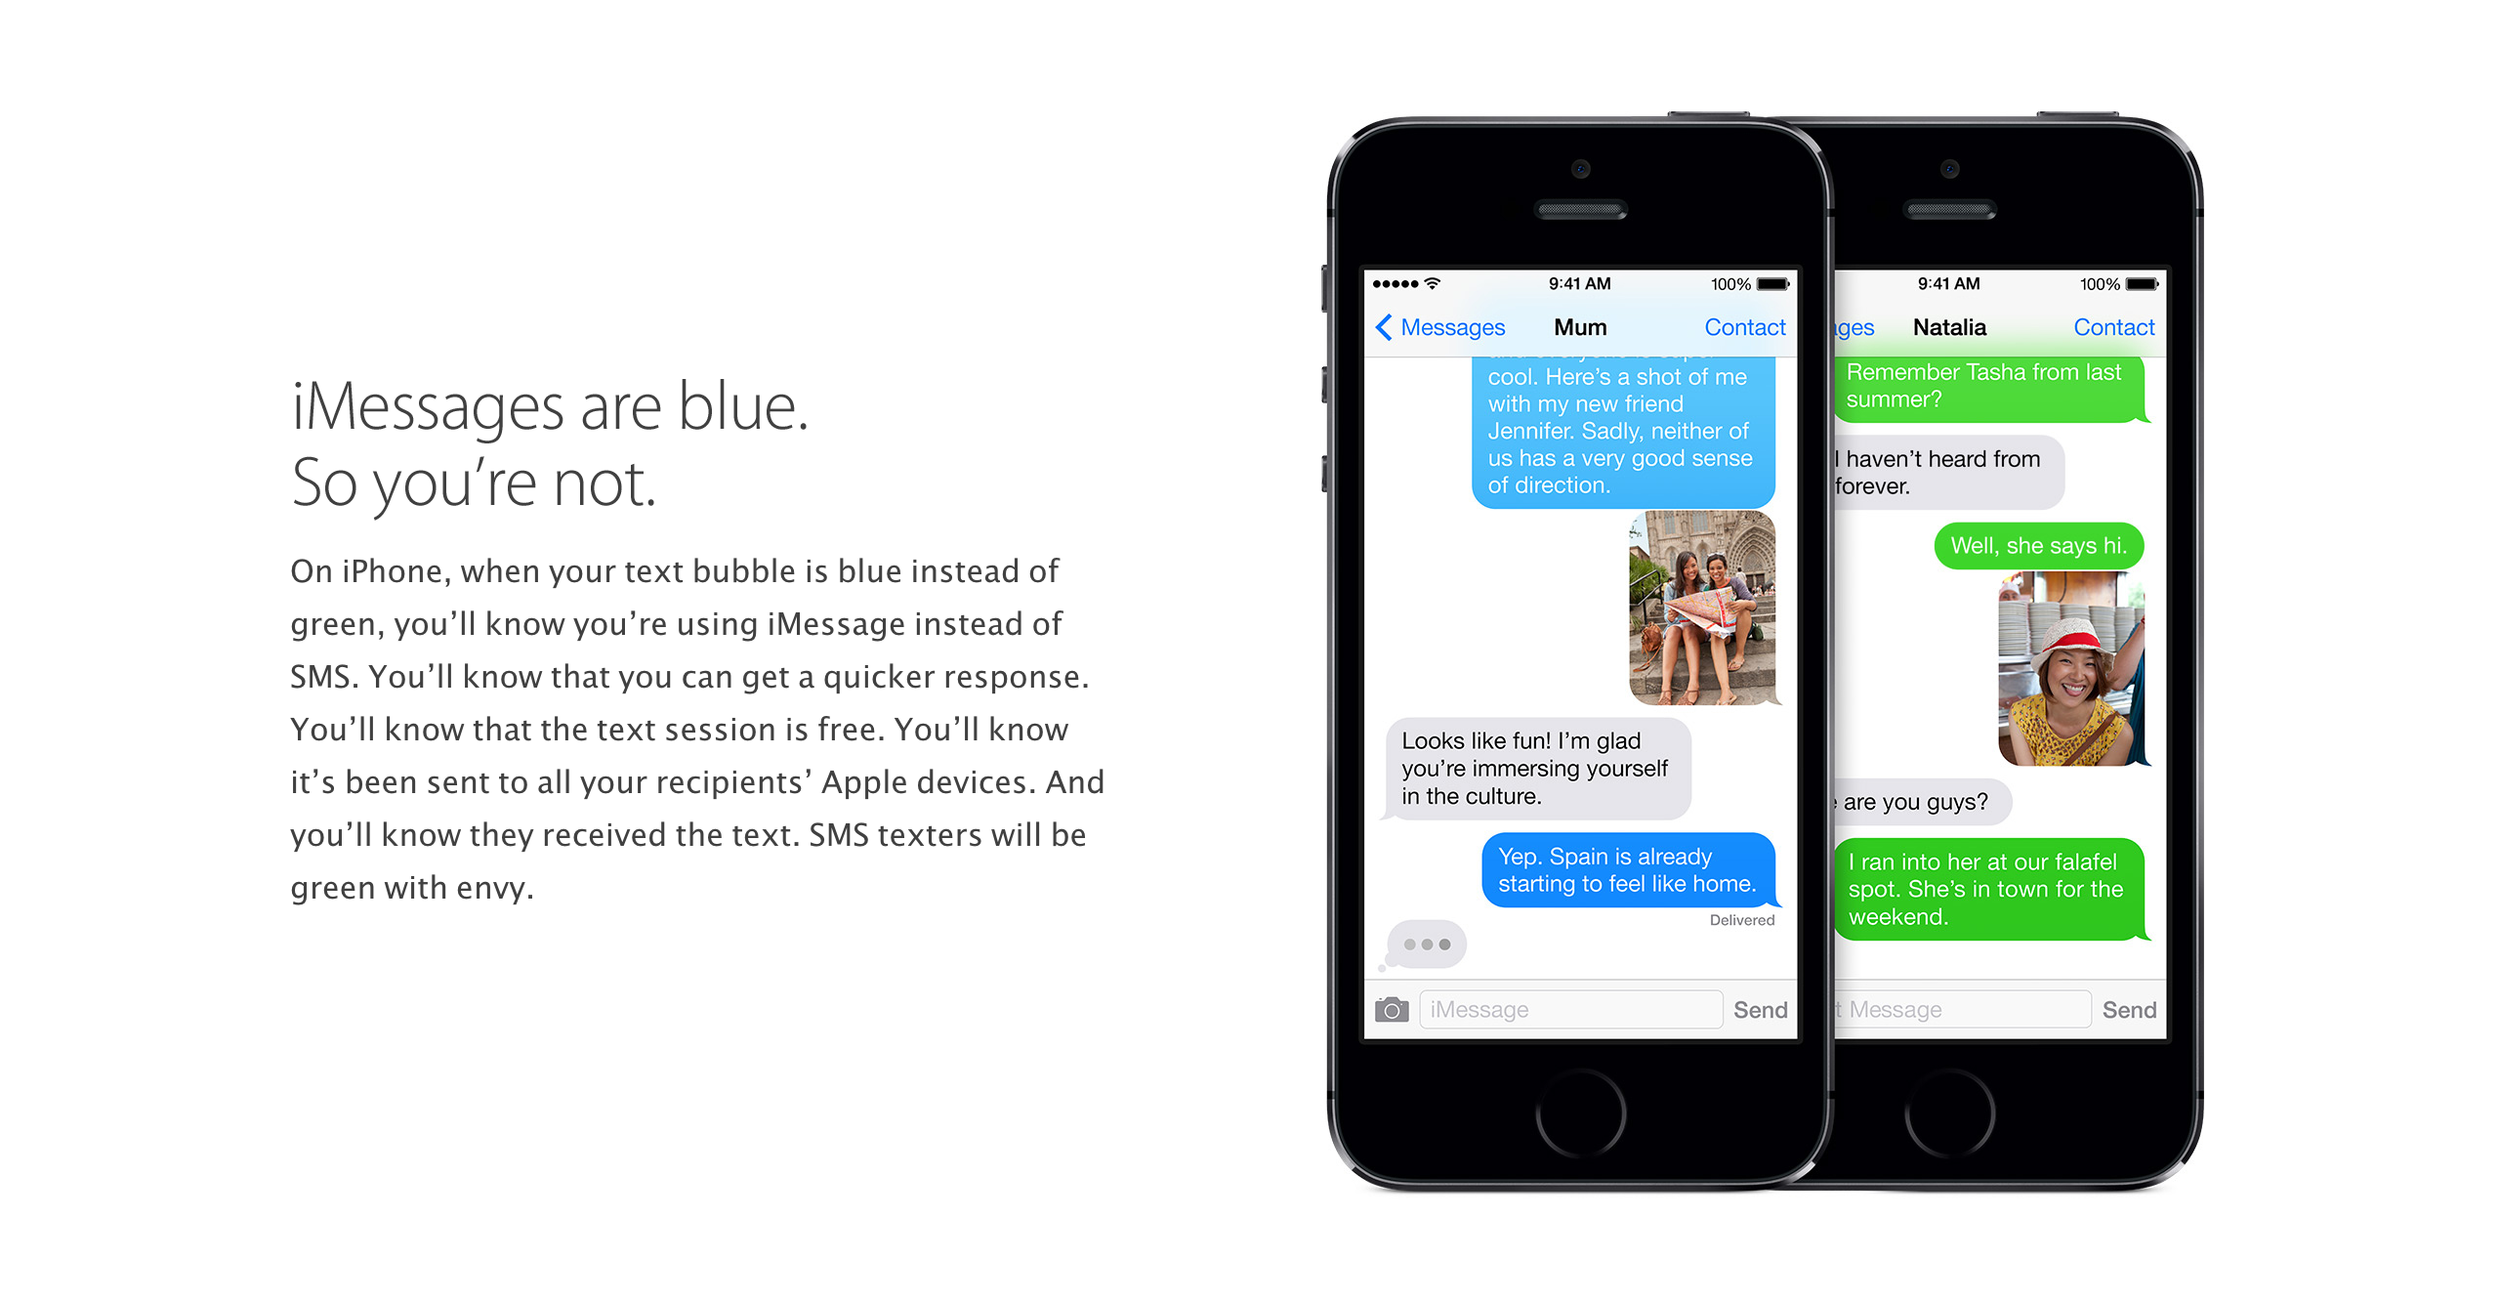 Android users are apparently supposed to be envious of these blue text messages.